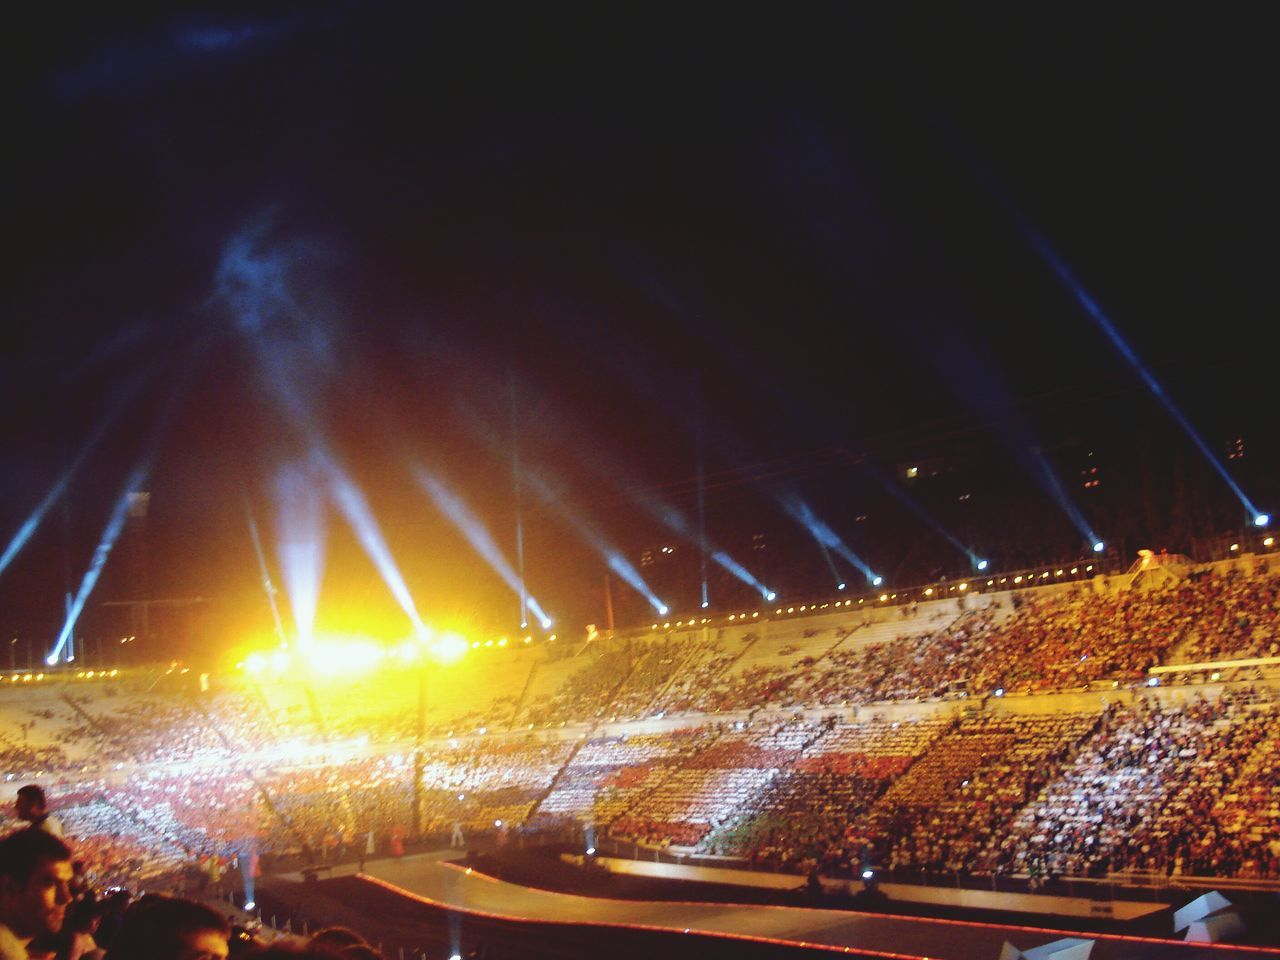 night, large group of people, illuminated, audience, crowd, real people, enjoyment, arts culture and entertainment, stage light, stage - performance space, outdoors, performance, music, popular music concert, fan - enthusiast, sky, people